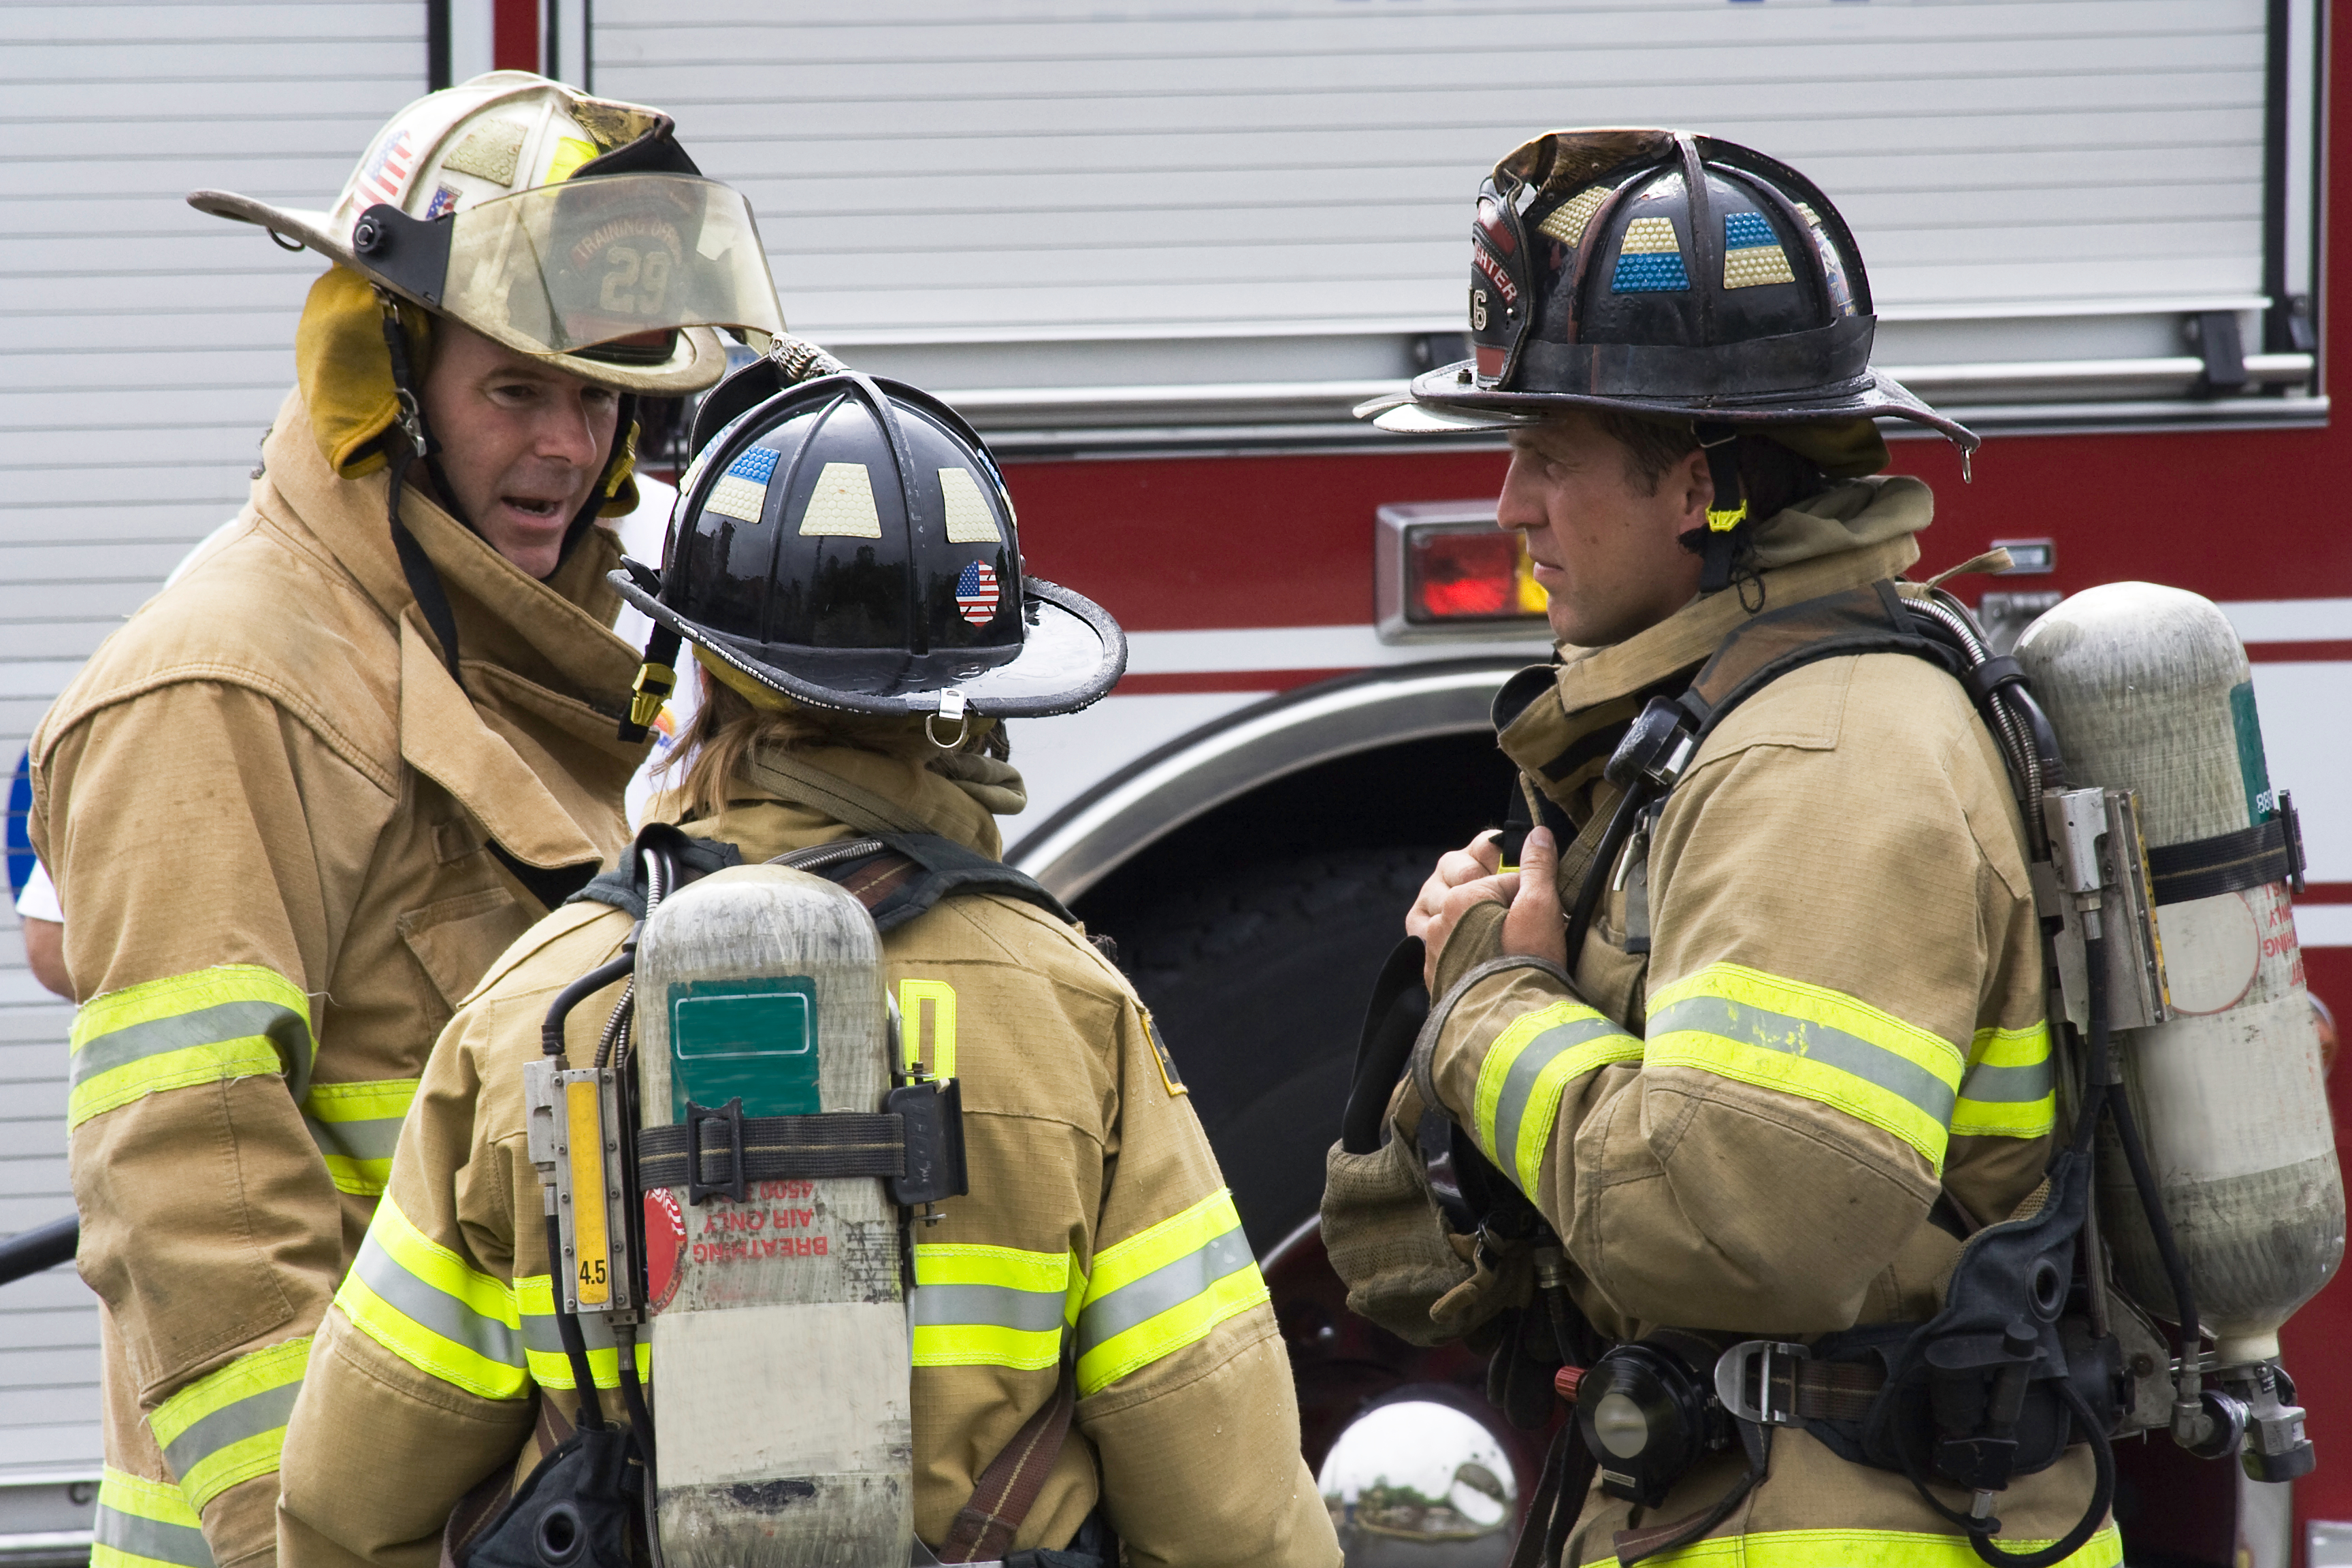 Firefighters Group